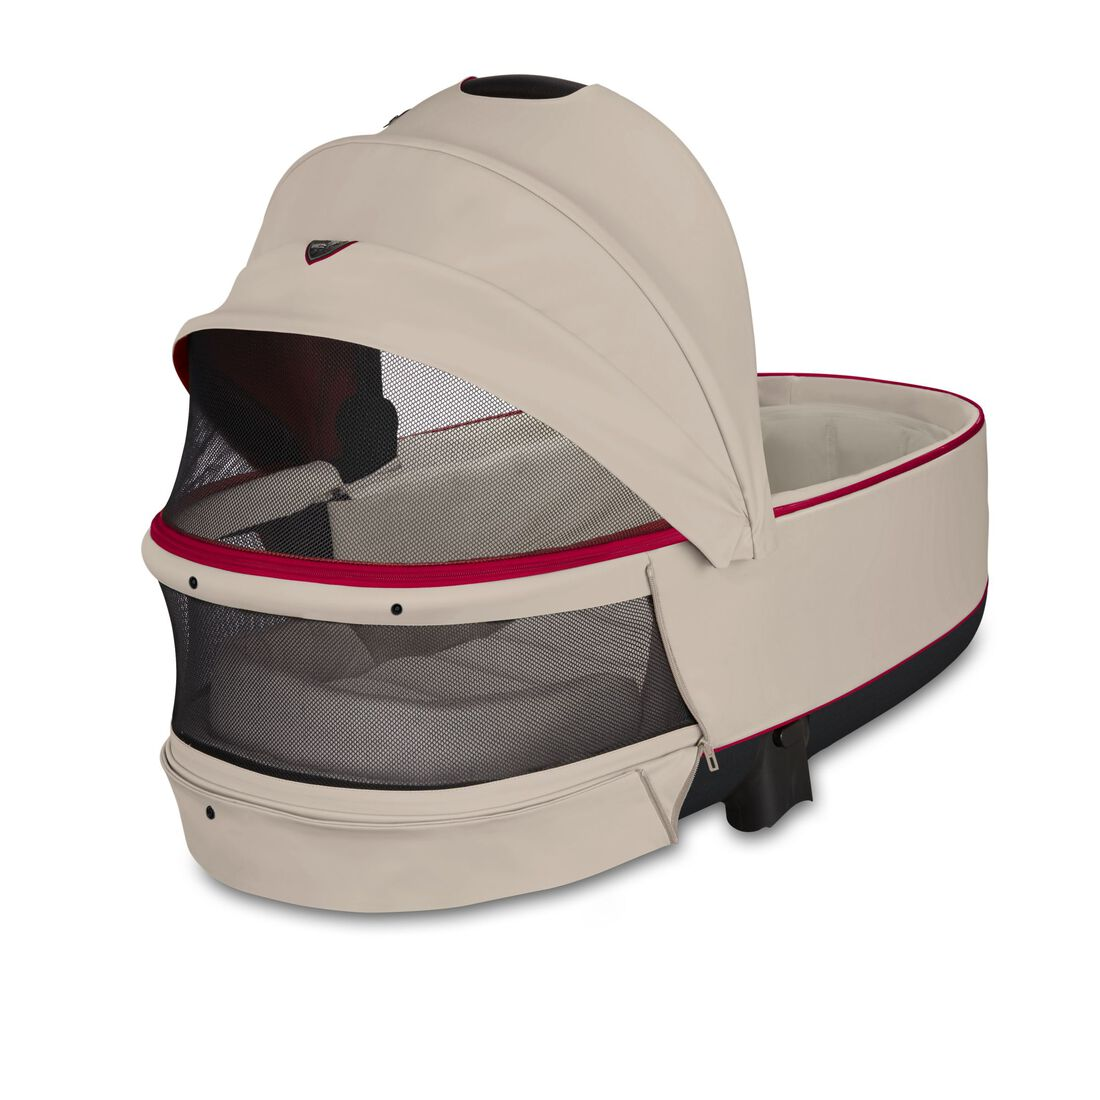 CYBEX Priam Lux Carry Cot - Ferrari Silver Grey in Ferrari Silver Grey large Bild 3